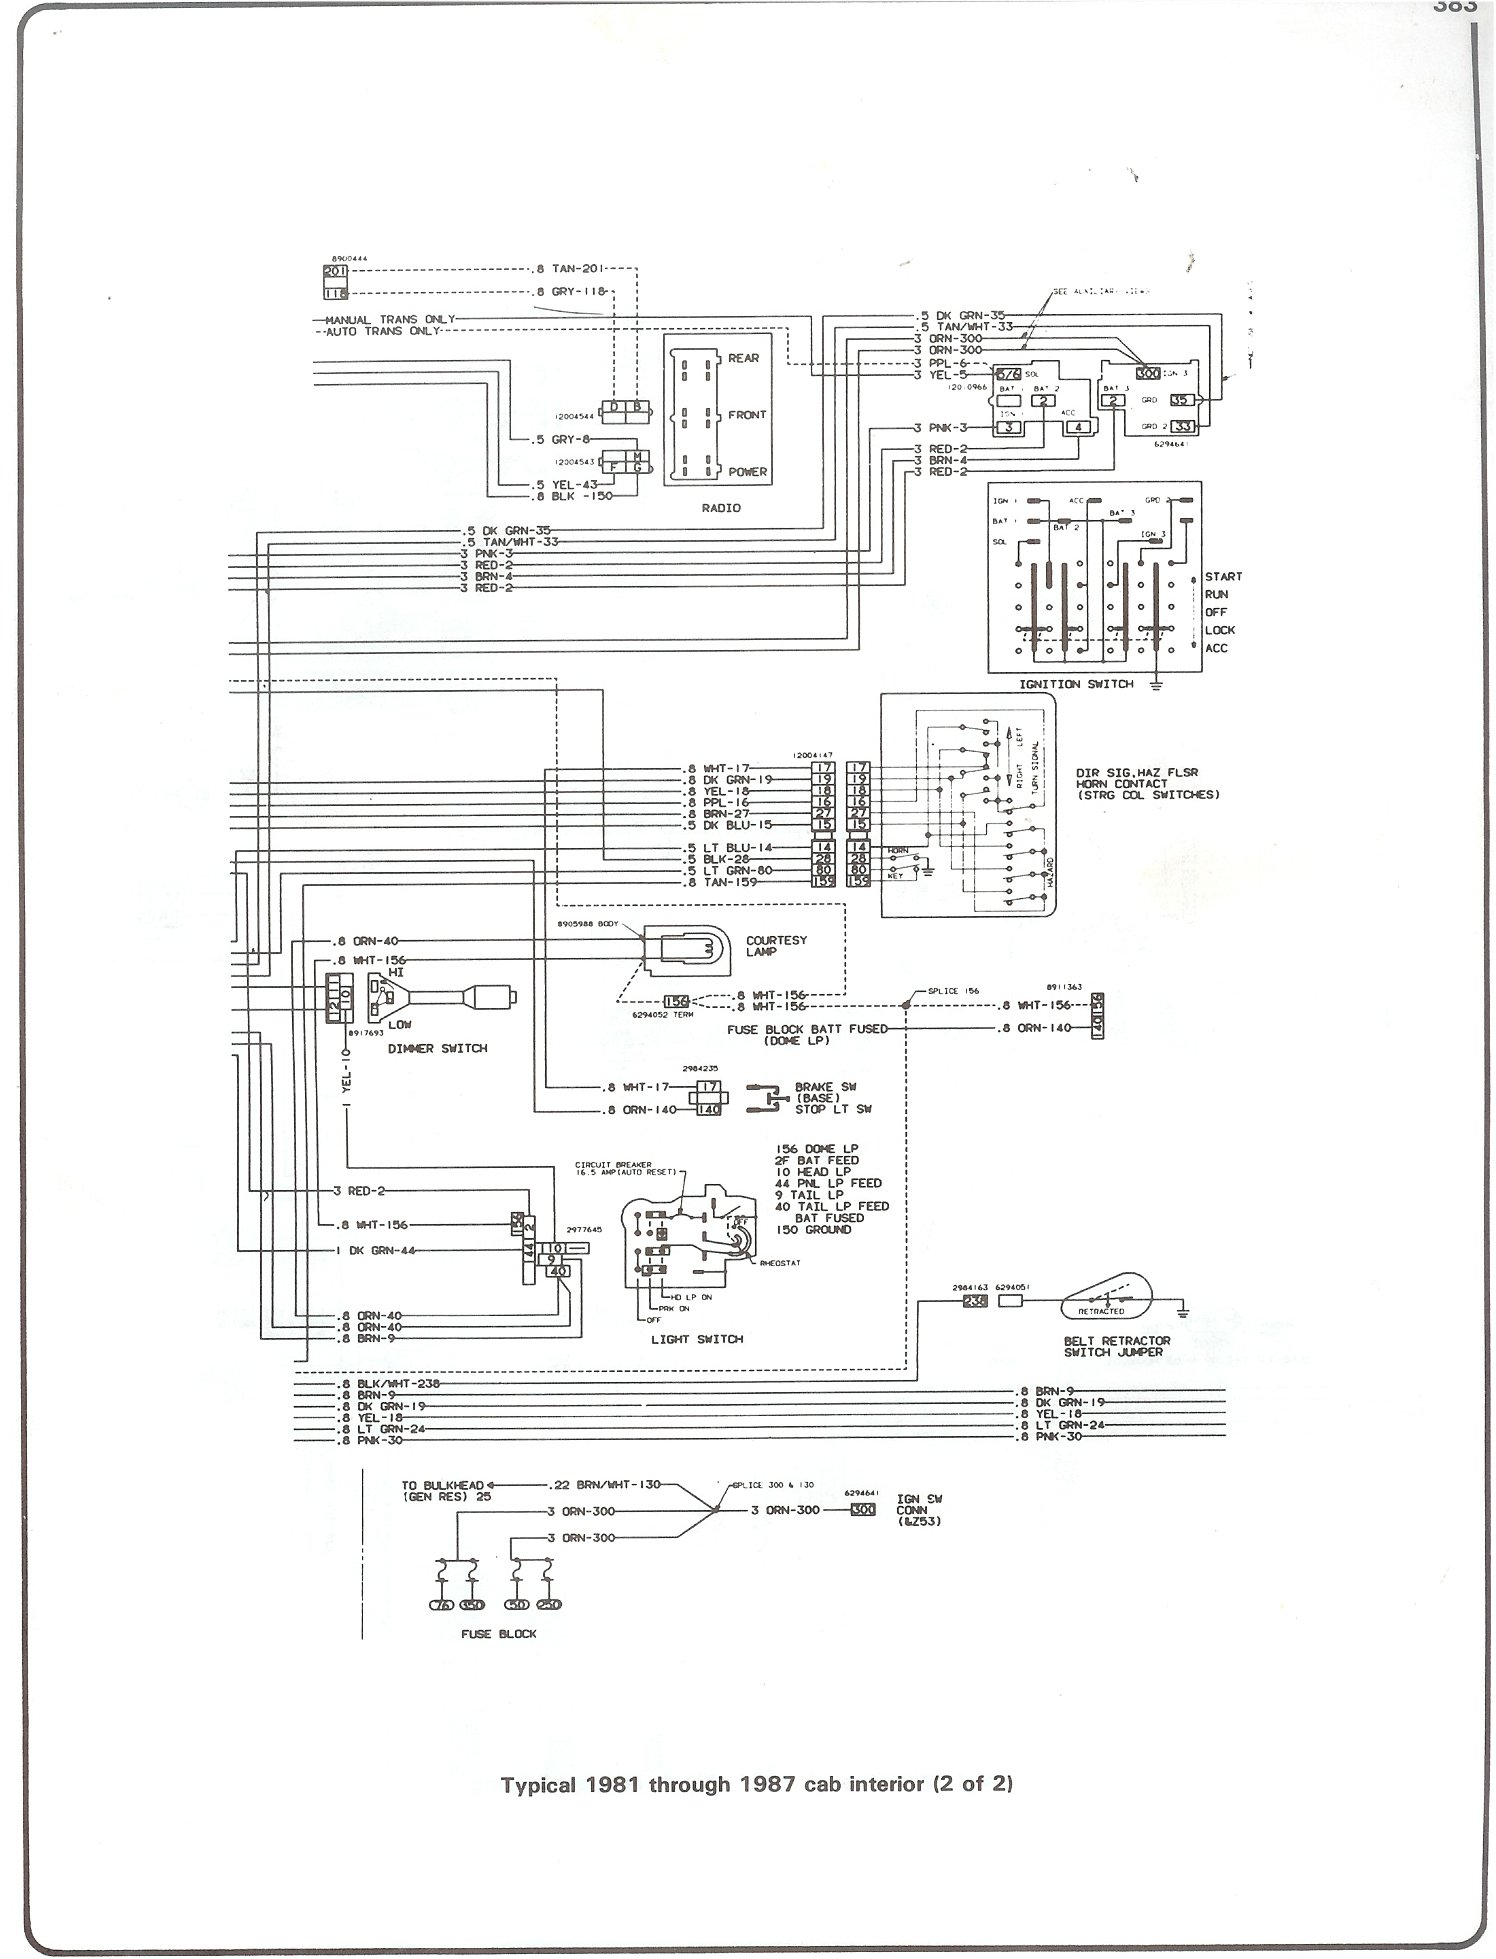 1973 Chevrolet Starter Wiring Diagram Services 12 Volt Gm Complete 73 87 Diagrams Rh Forum 87chevytrucks Com Chevy 350 Factory